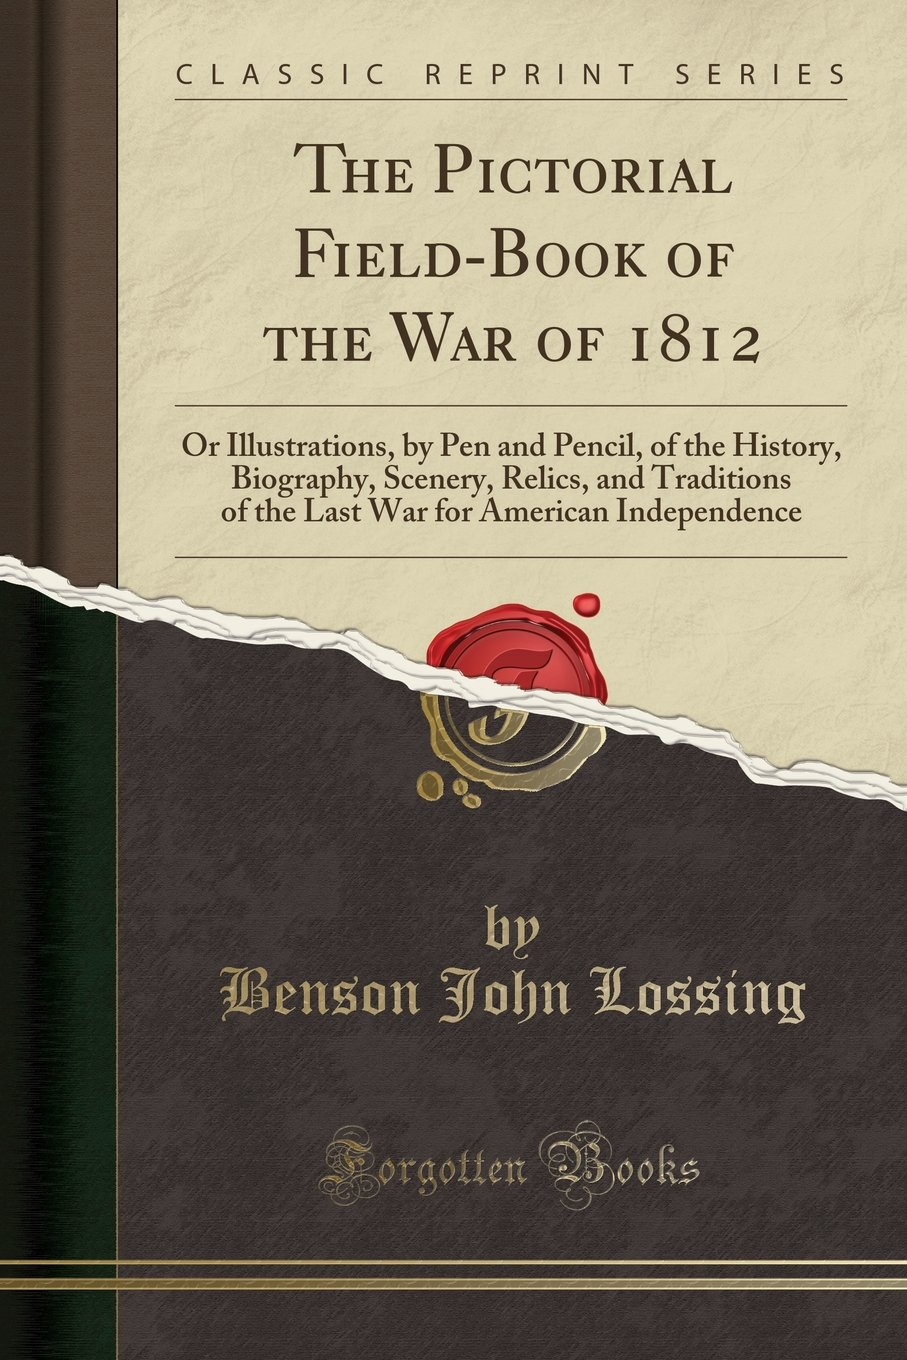 The Pictorial Field-Book of the War of 1812: Or Illustrations, by Pen and Pencil, of the History, Biography, Scenery, Relics, and Traditions of the Last War for American Independence (Classic Reprint)